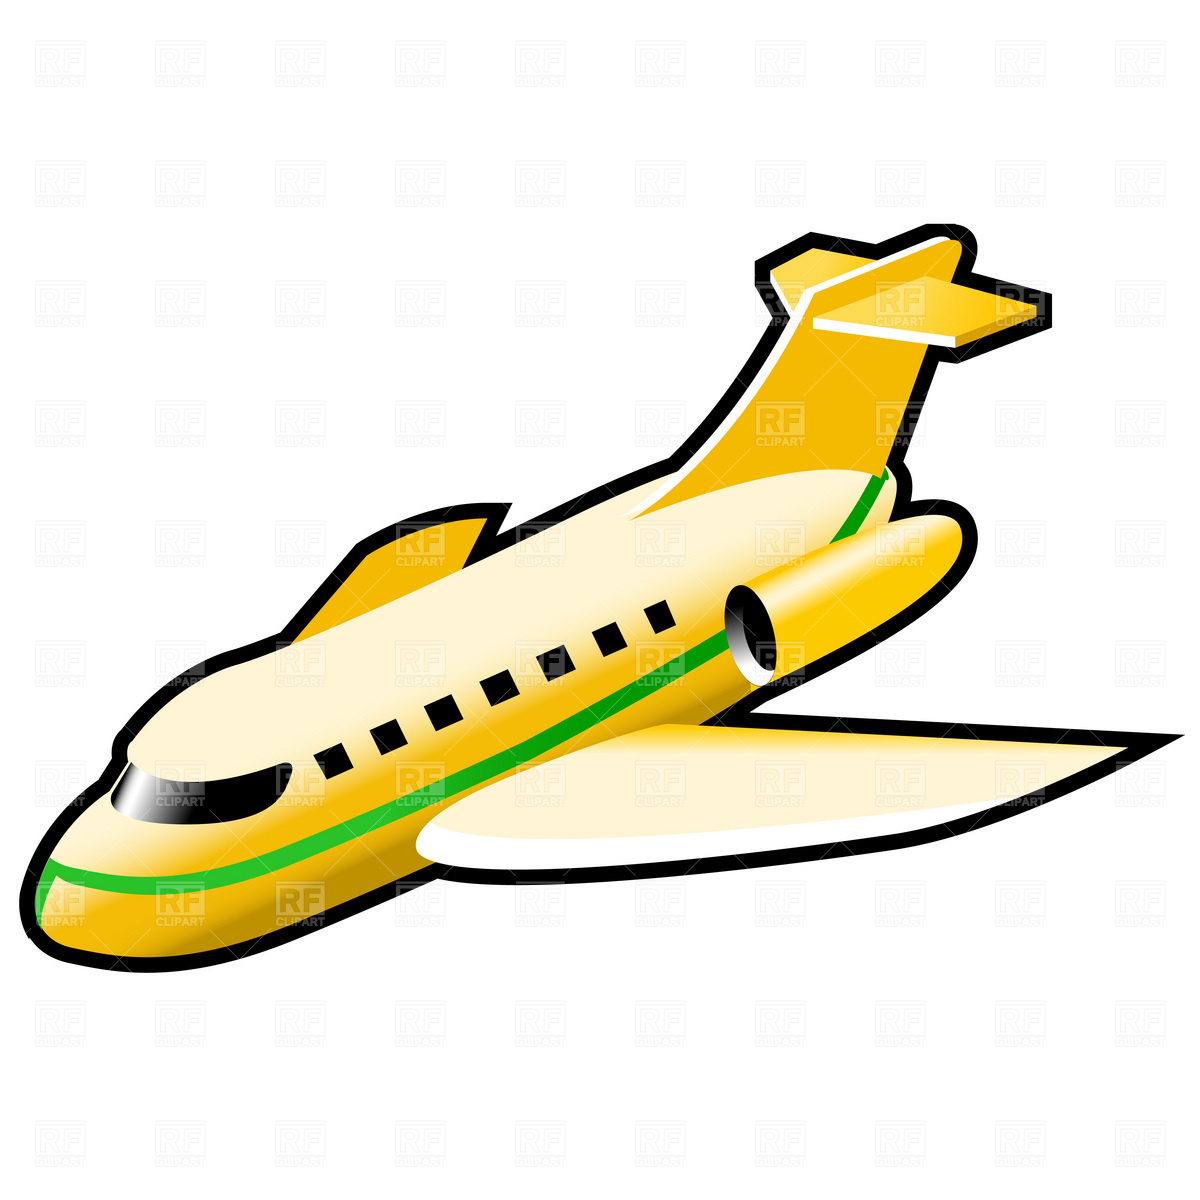 free airplane clipart vector - photo #20